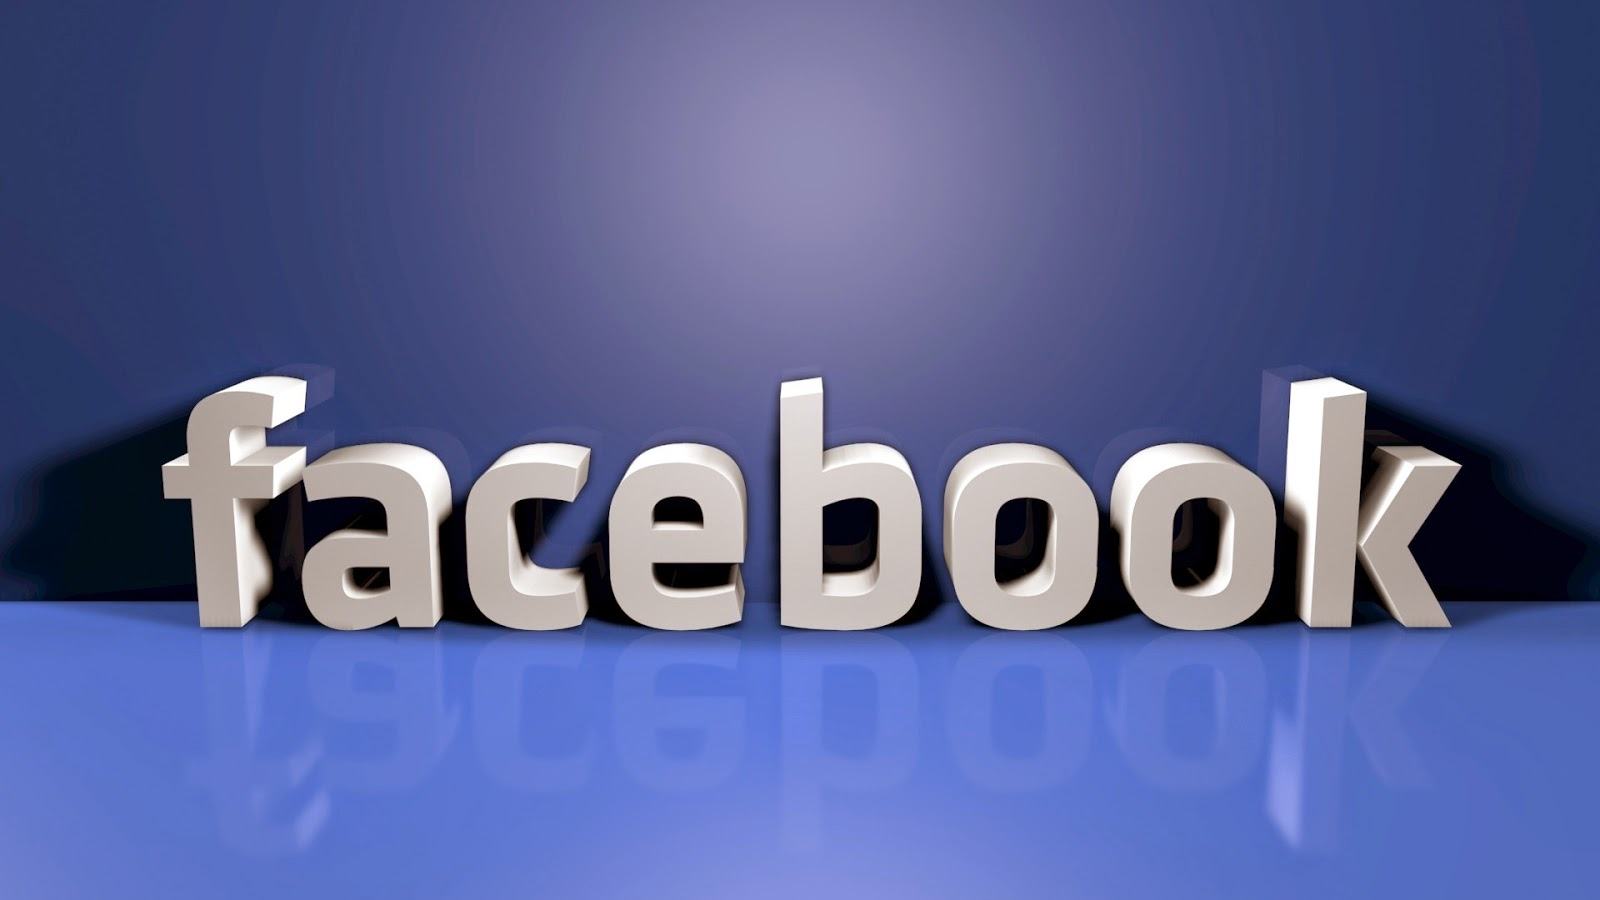 Amazing Facts About Facebook History Earning Users